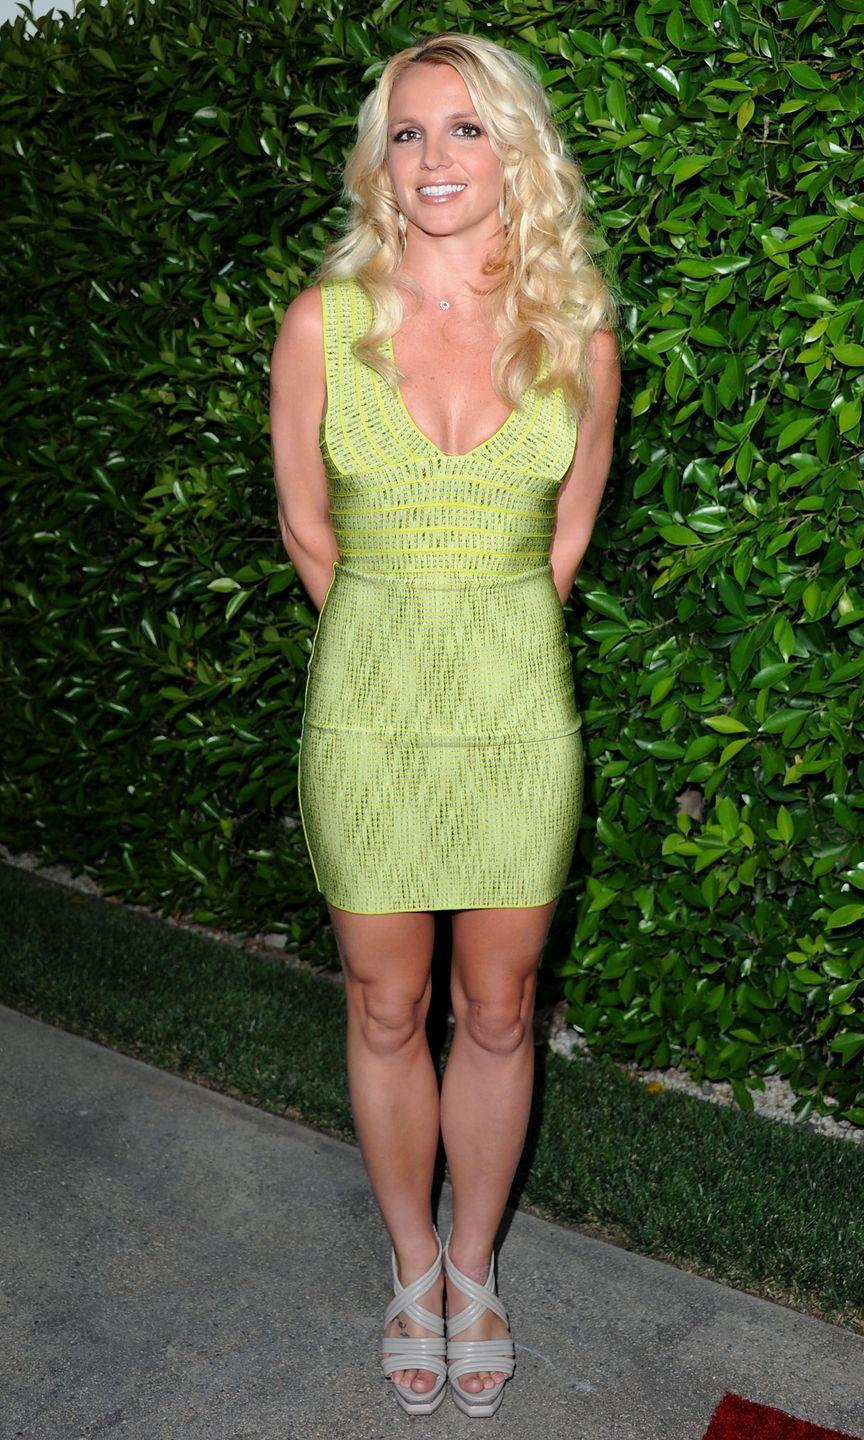 <p>Britney Spears wears a lime green bodycon dress for the Southern Style St. Bernard Project event on May 11, 2011 in Beverly Hills, California.</p>